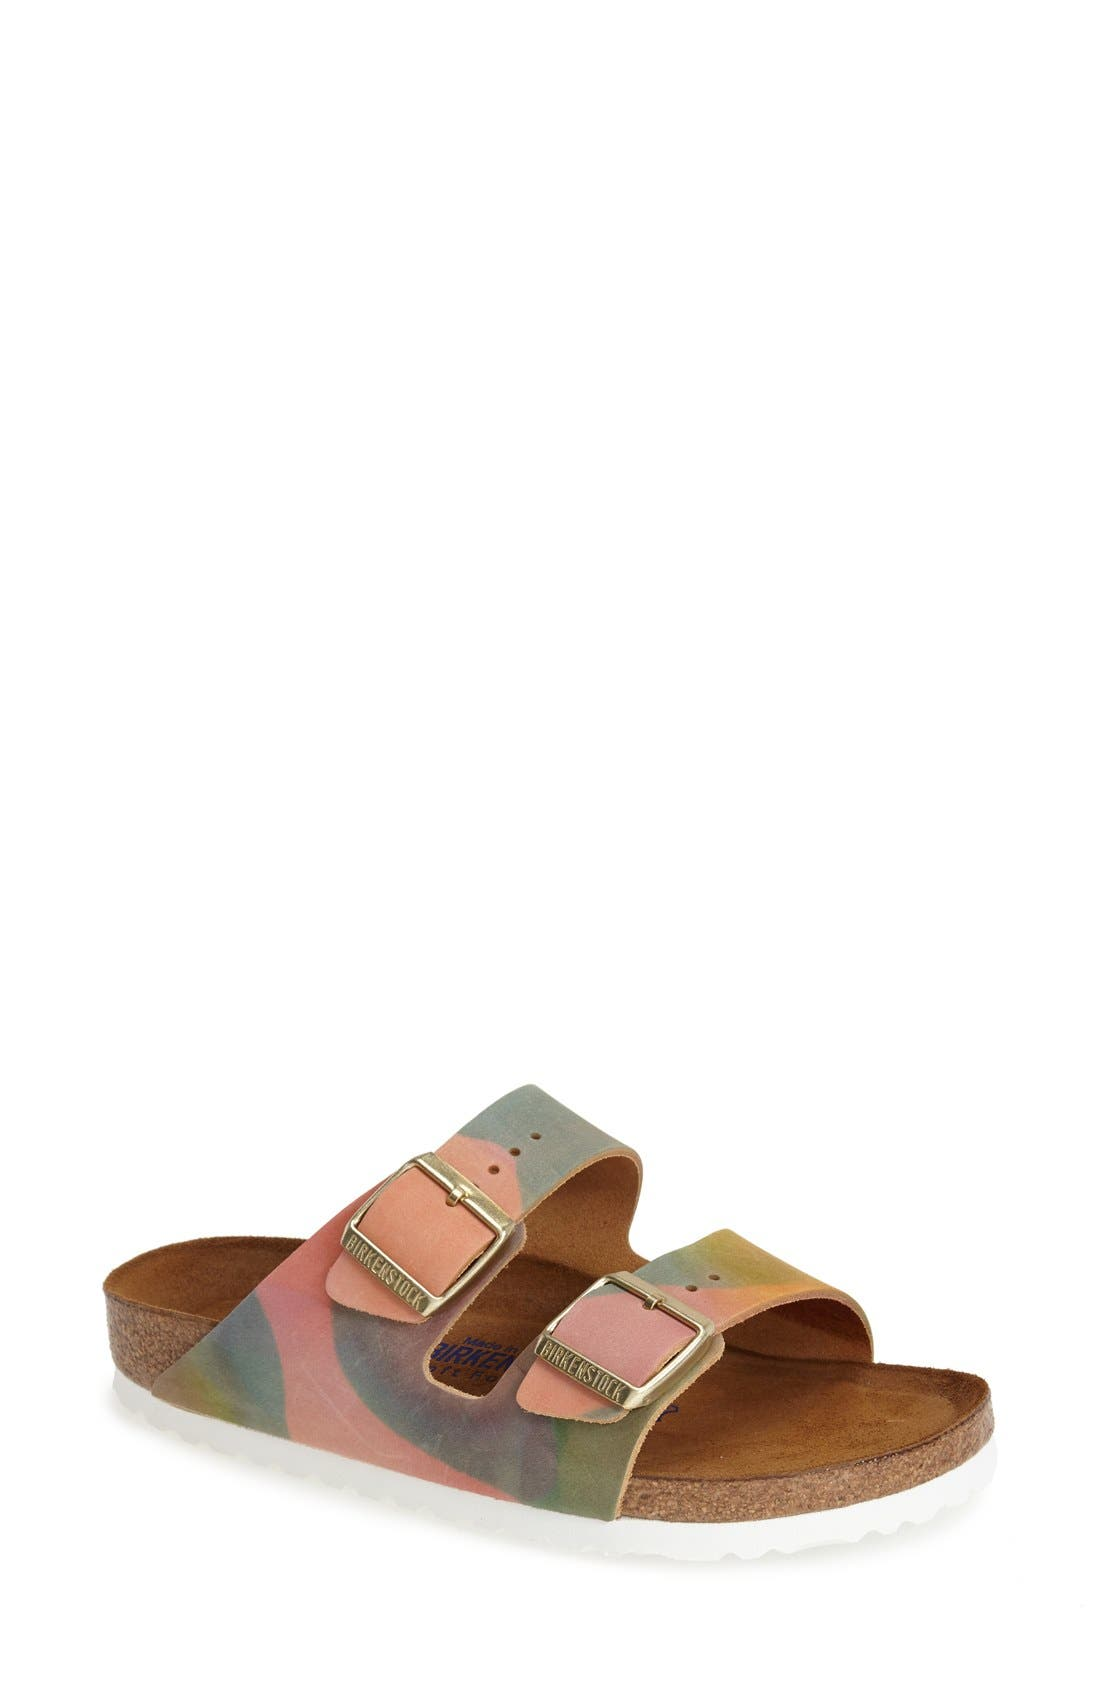 Alternate Image 1 Selected - Birkenstock 'Arizona' Nubuck Leather Sandal (Women)